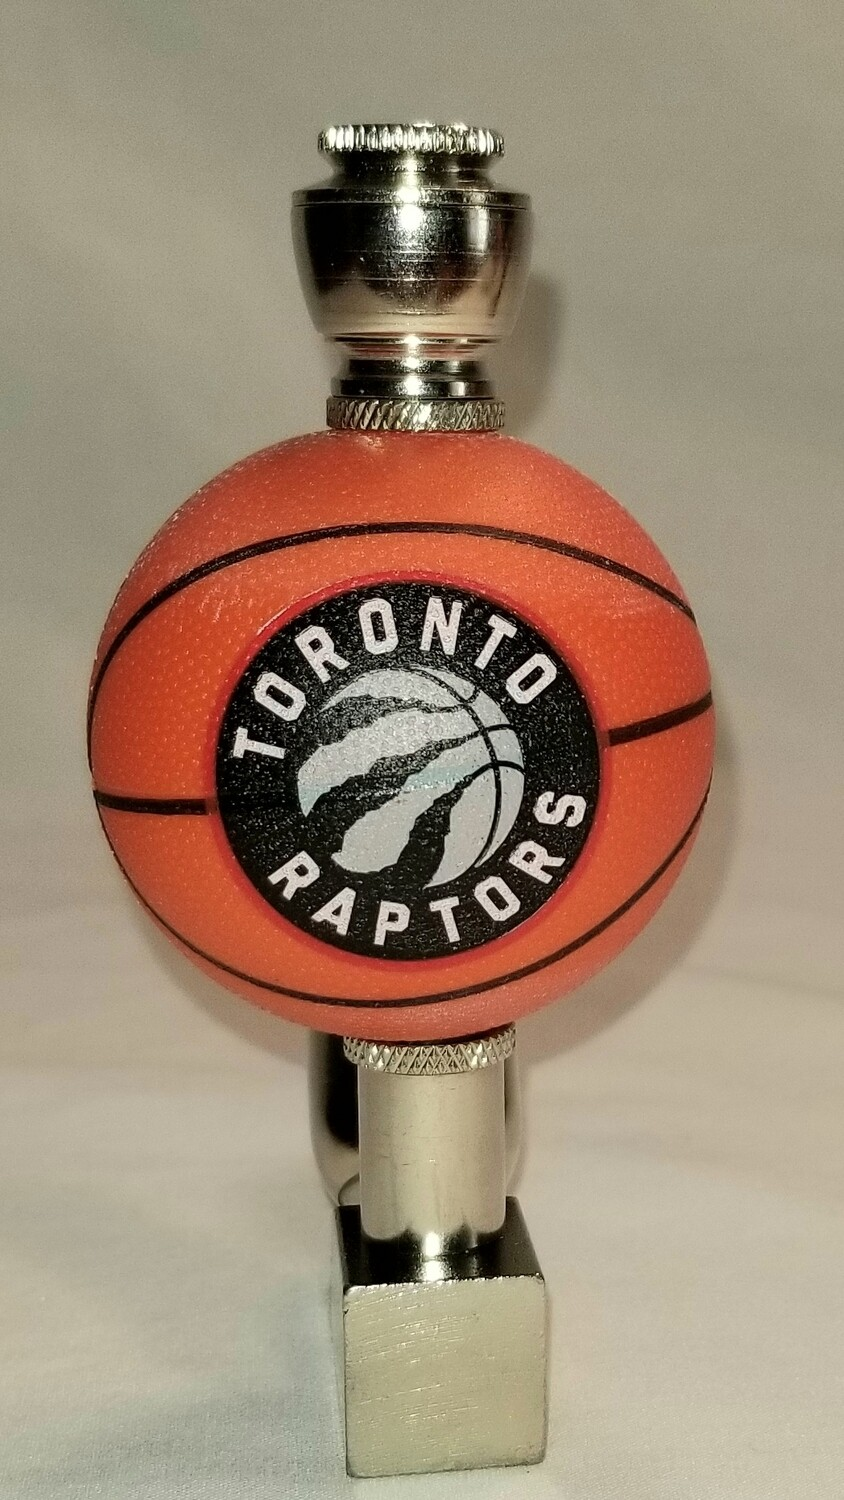 TORONTO RAPTORS BASKETBALL SMOKING PIPE Wedge/Nickel